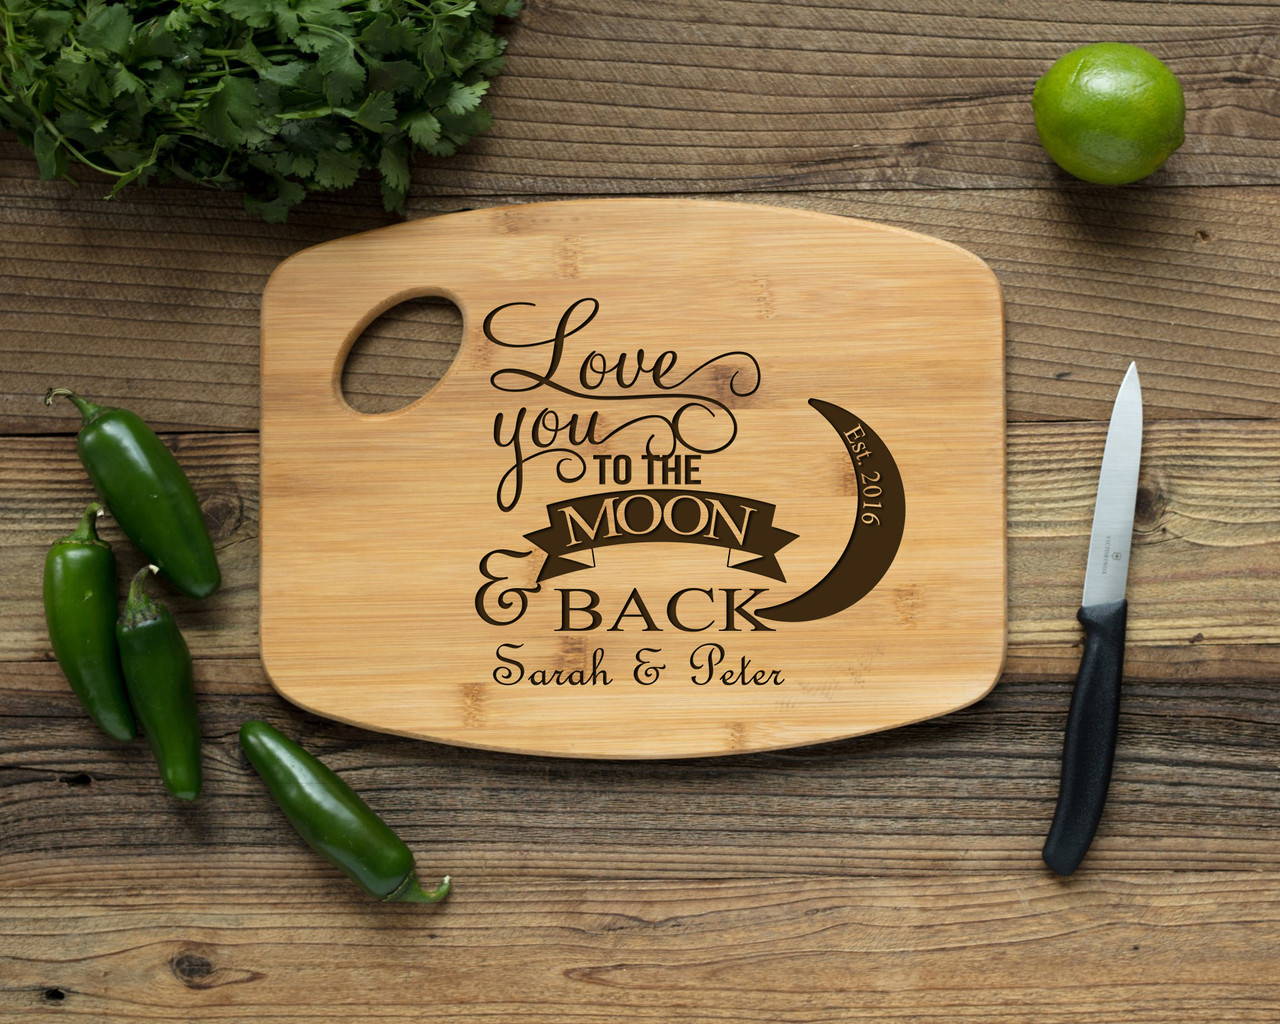 Grpn Spain - Handle Personalized Cutting Board - Love You to the Moon & Back